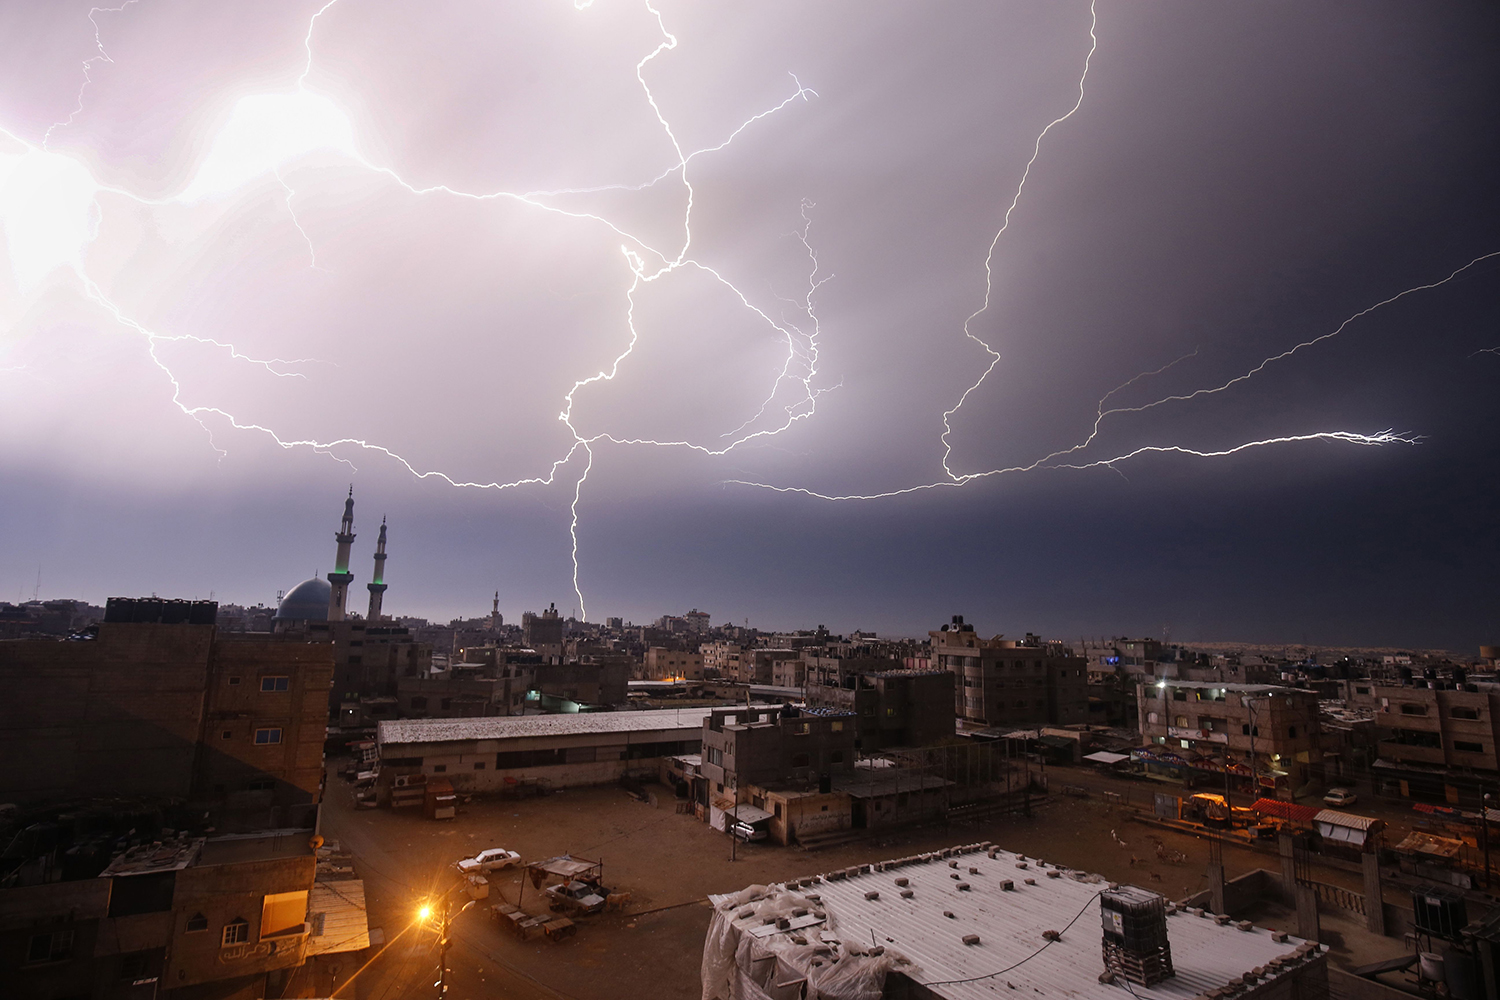 Lightning fills the sky over Rafah in the southern Gaza Strip during heavy rains on Jan. 16. SAID KHATIB/AFP via Getty Images